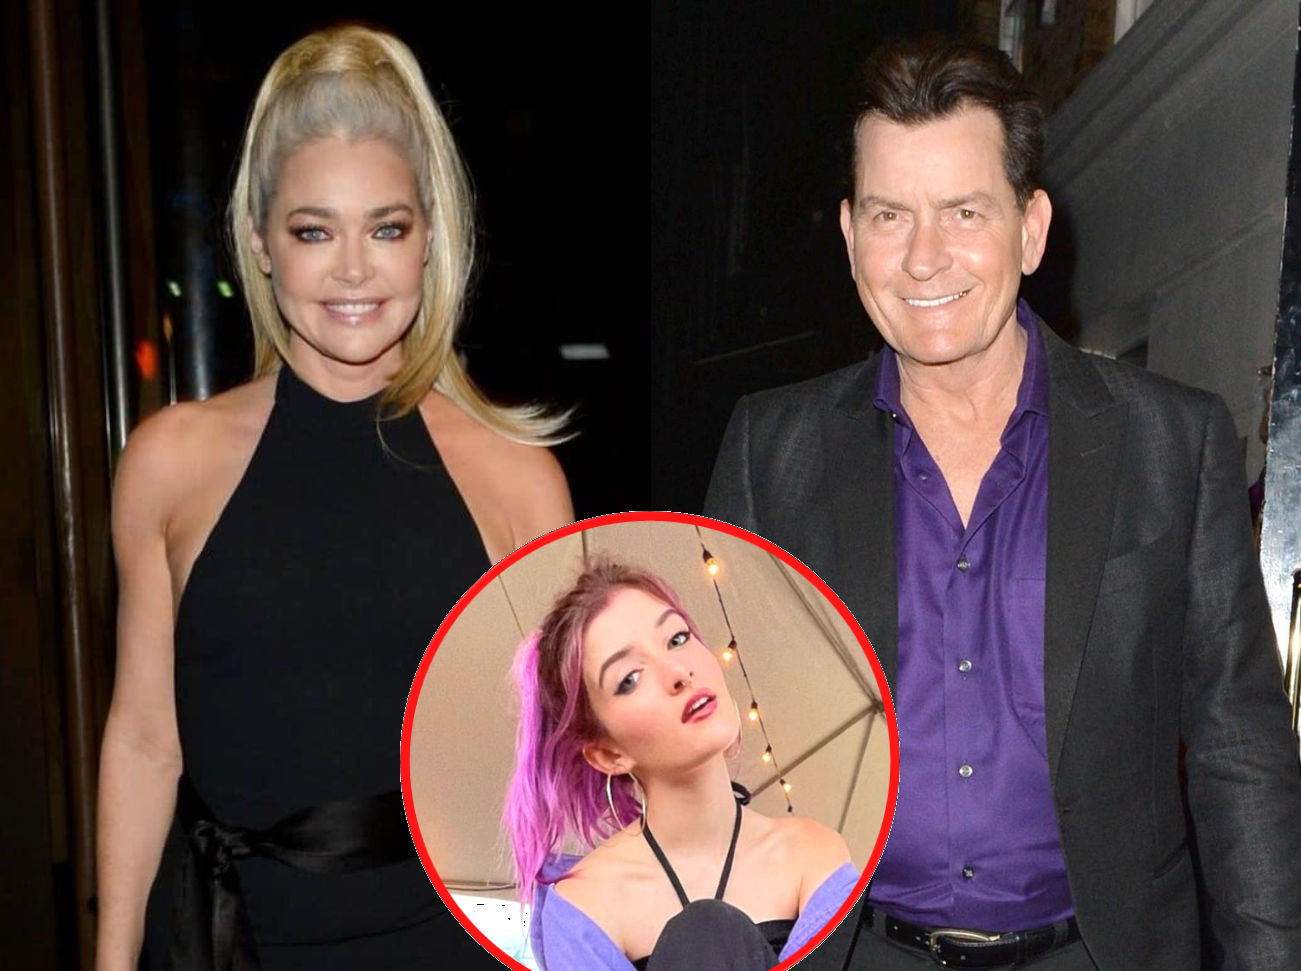 """Denise Richards Doesn't Want To Be Daughter Sami Sheen's """"Friend"""" As RHOBH Alum Wishes She Could Co-Parent With Ex Charlie Sheen"""